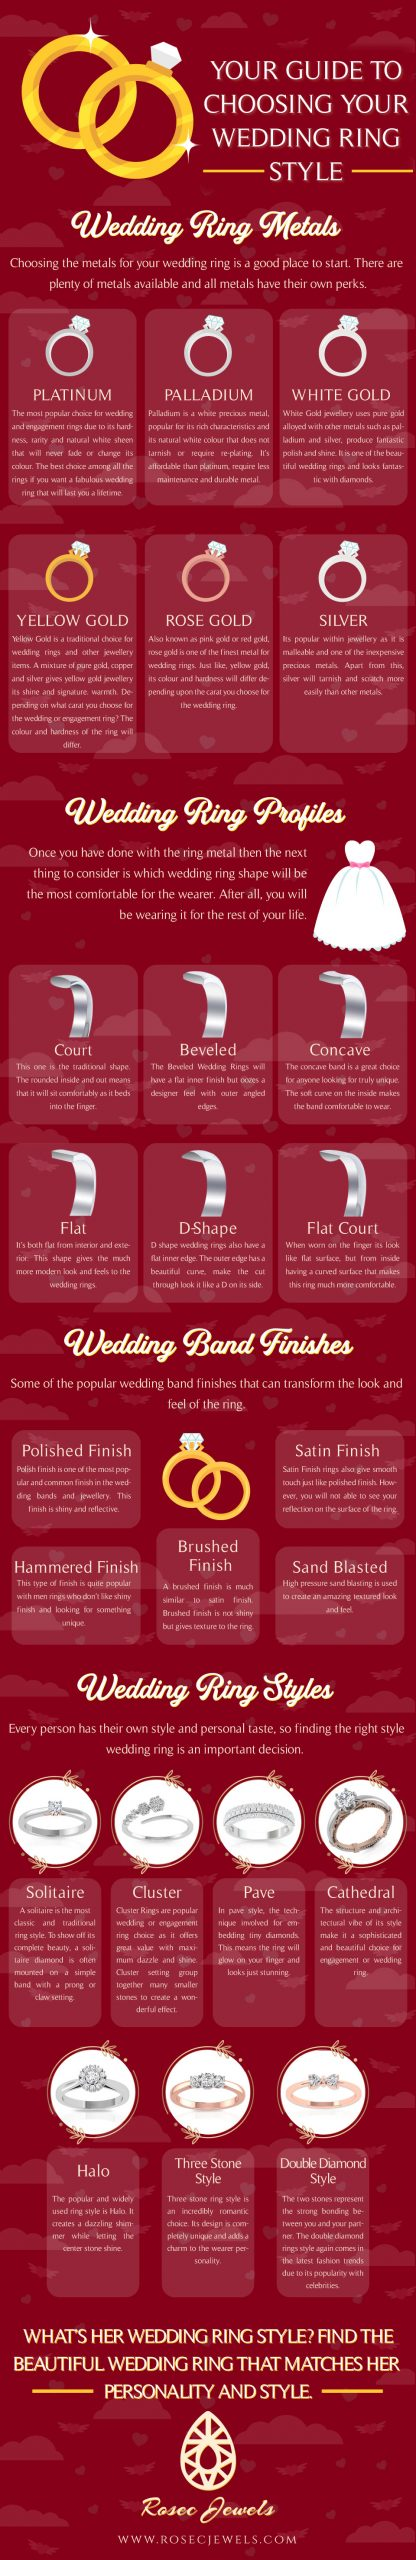 Your Guide to Choosing Your Wedding Ring Style